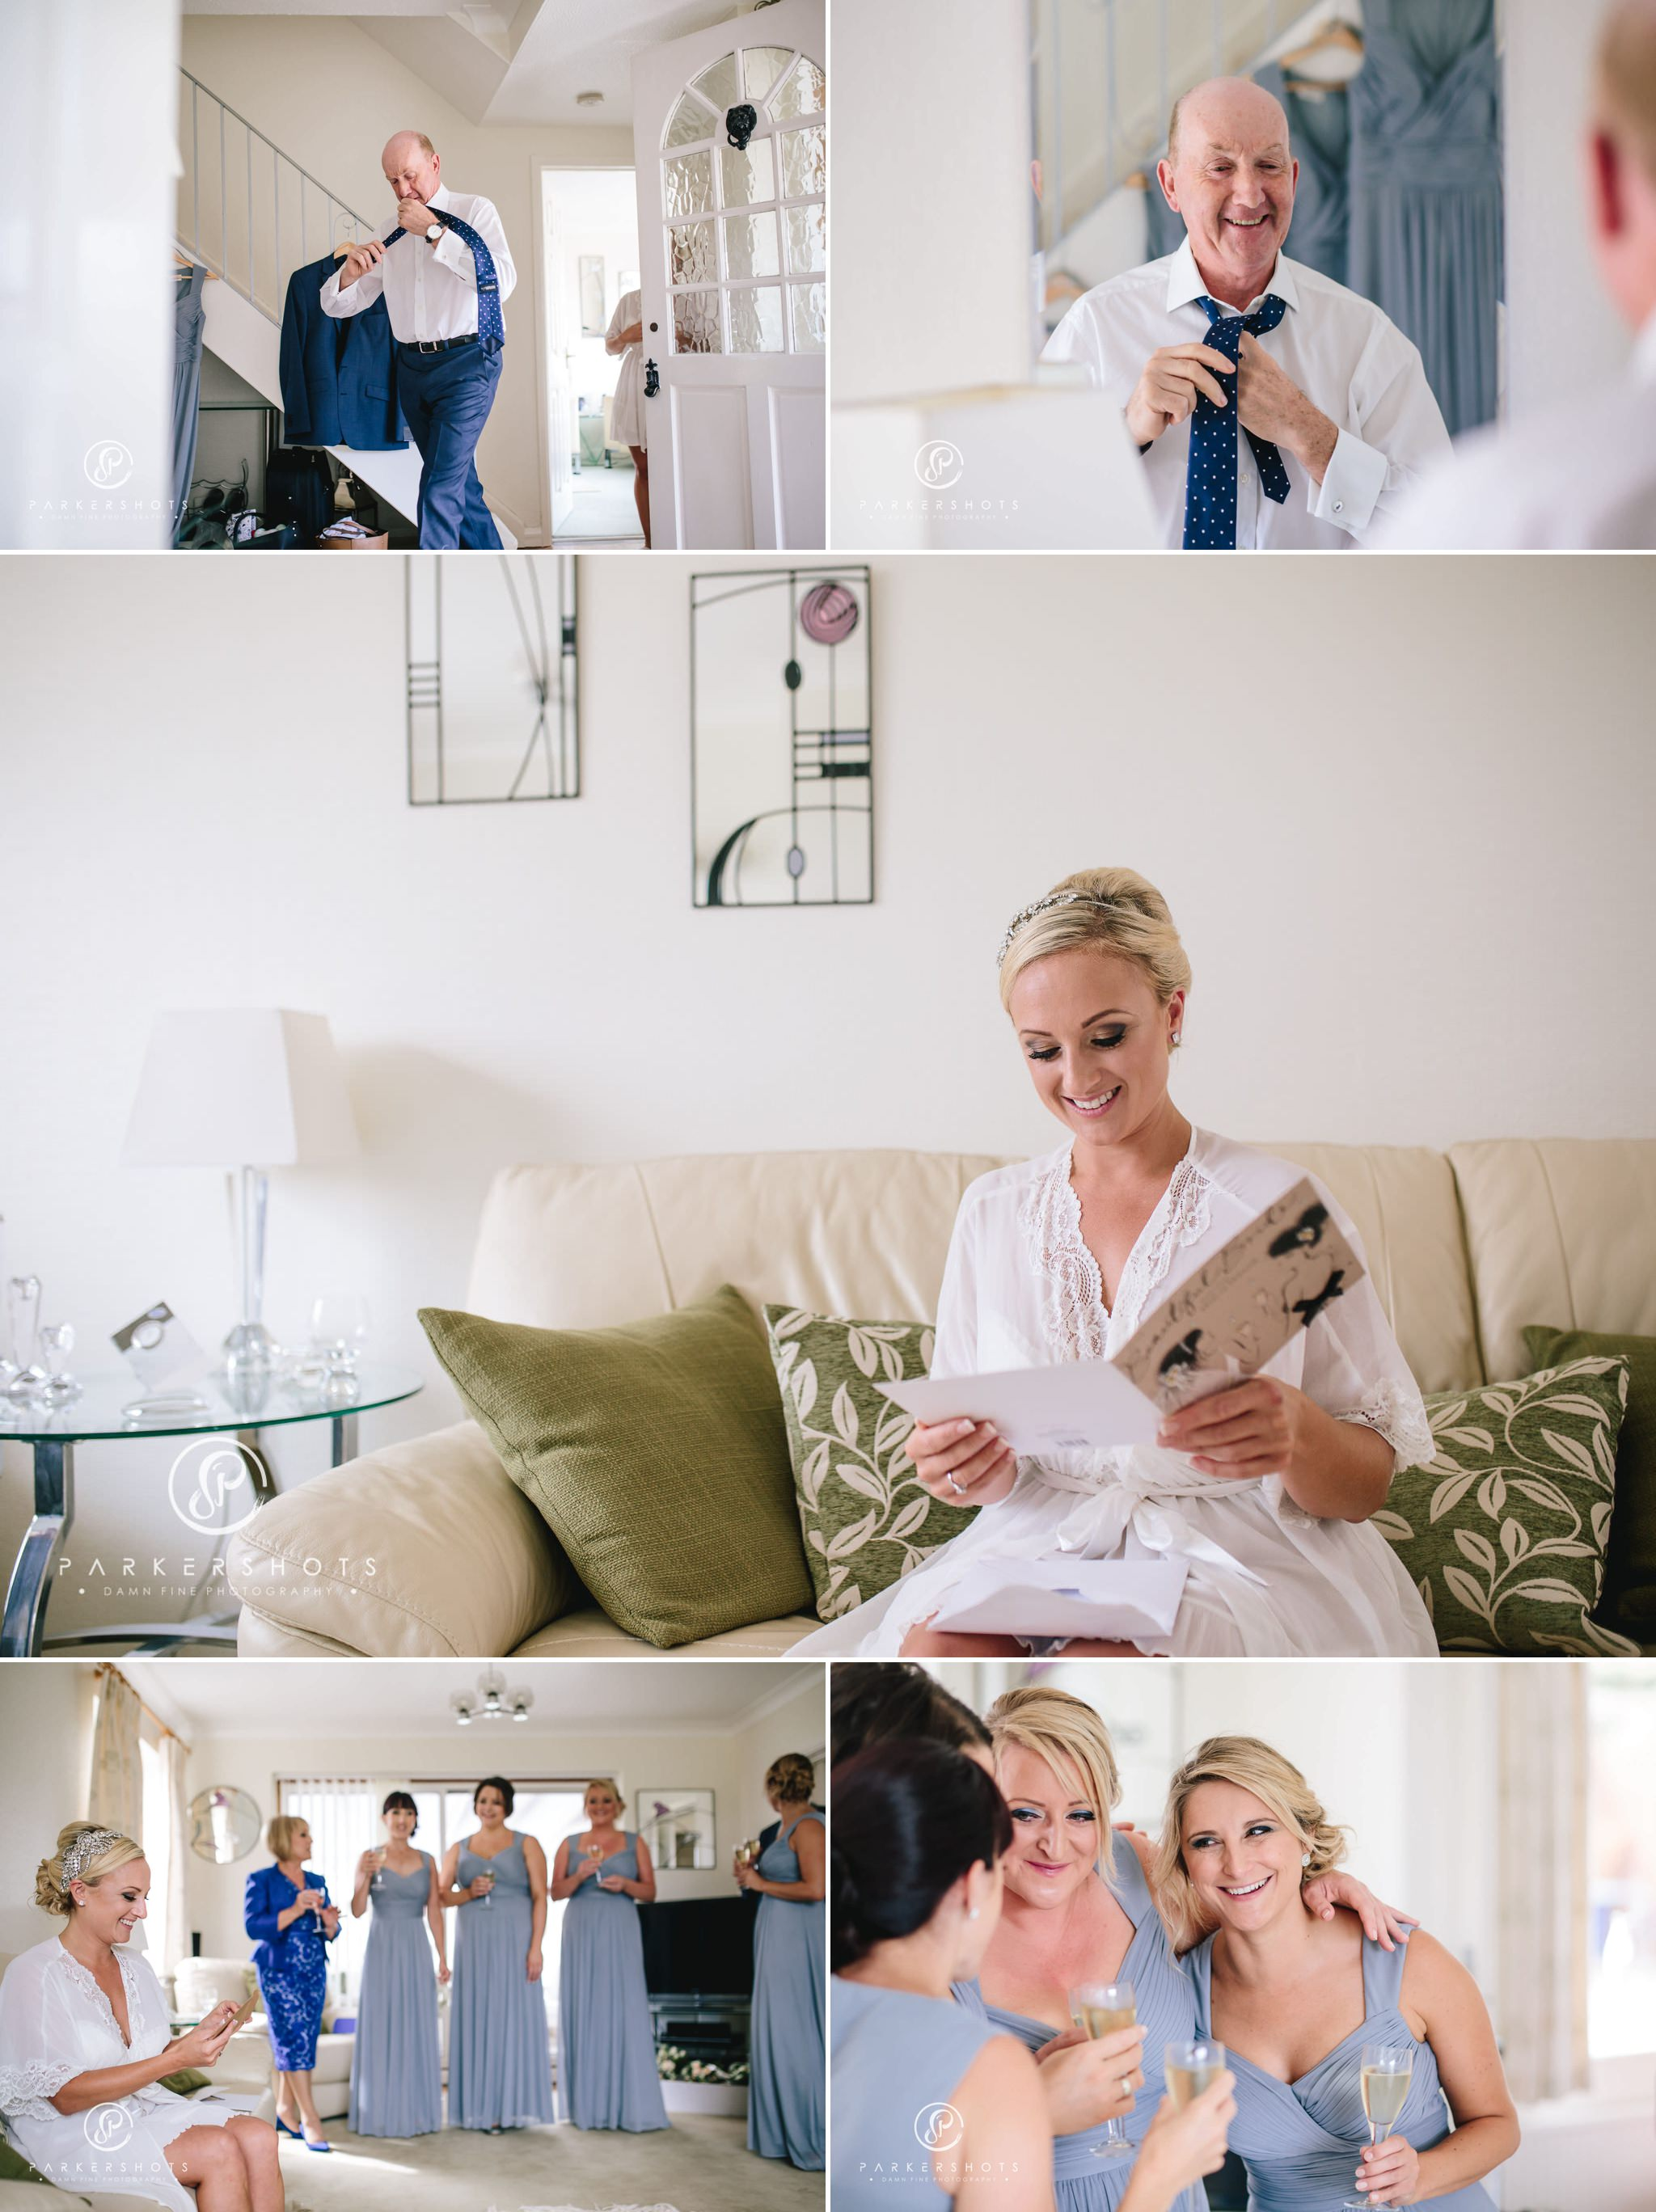 Chafford Park Wedding Photographer 4